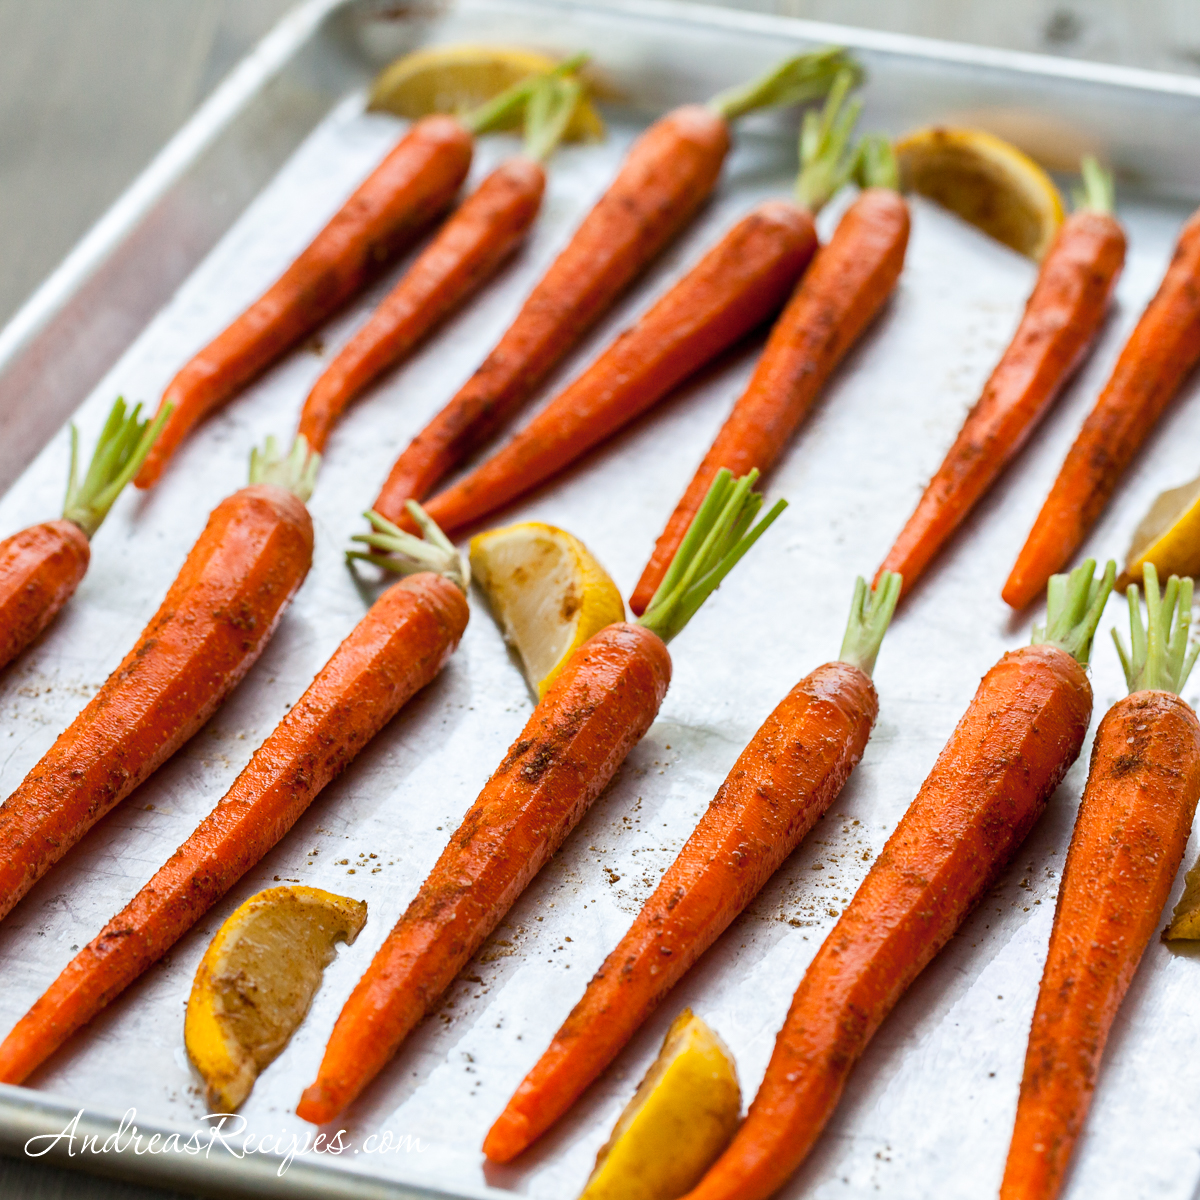 Roasted Carrots with Moroccan Spices - Andrea Meyers